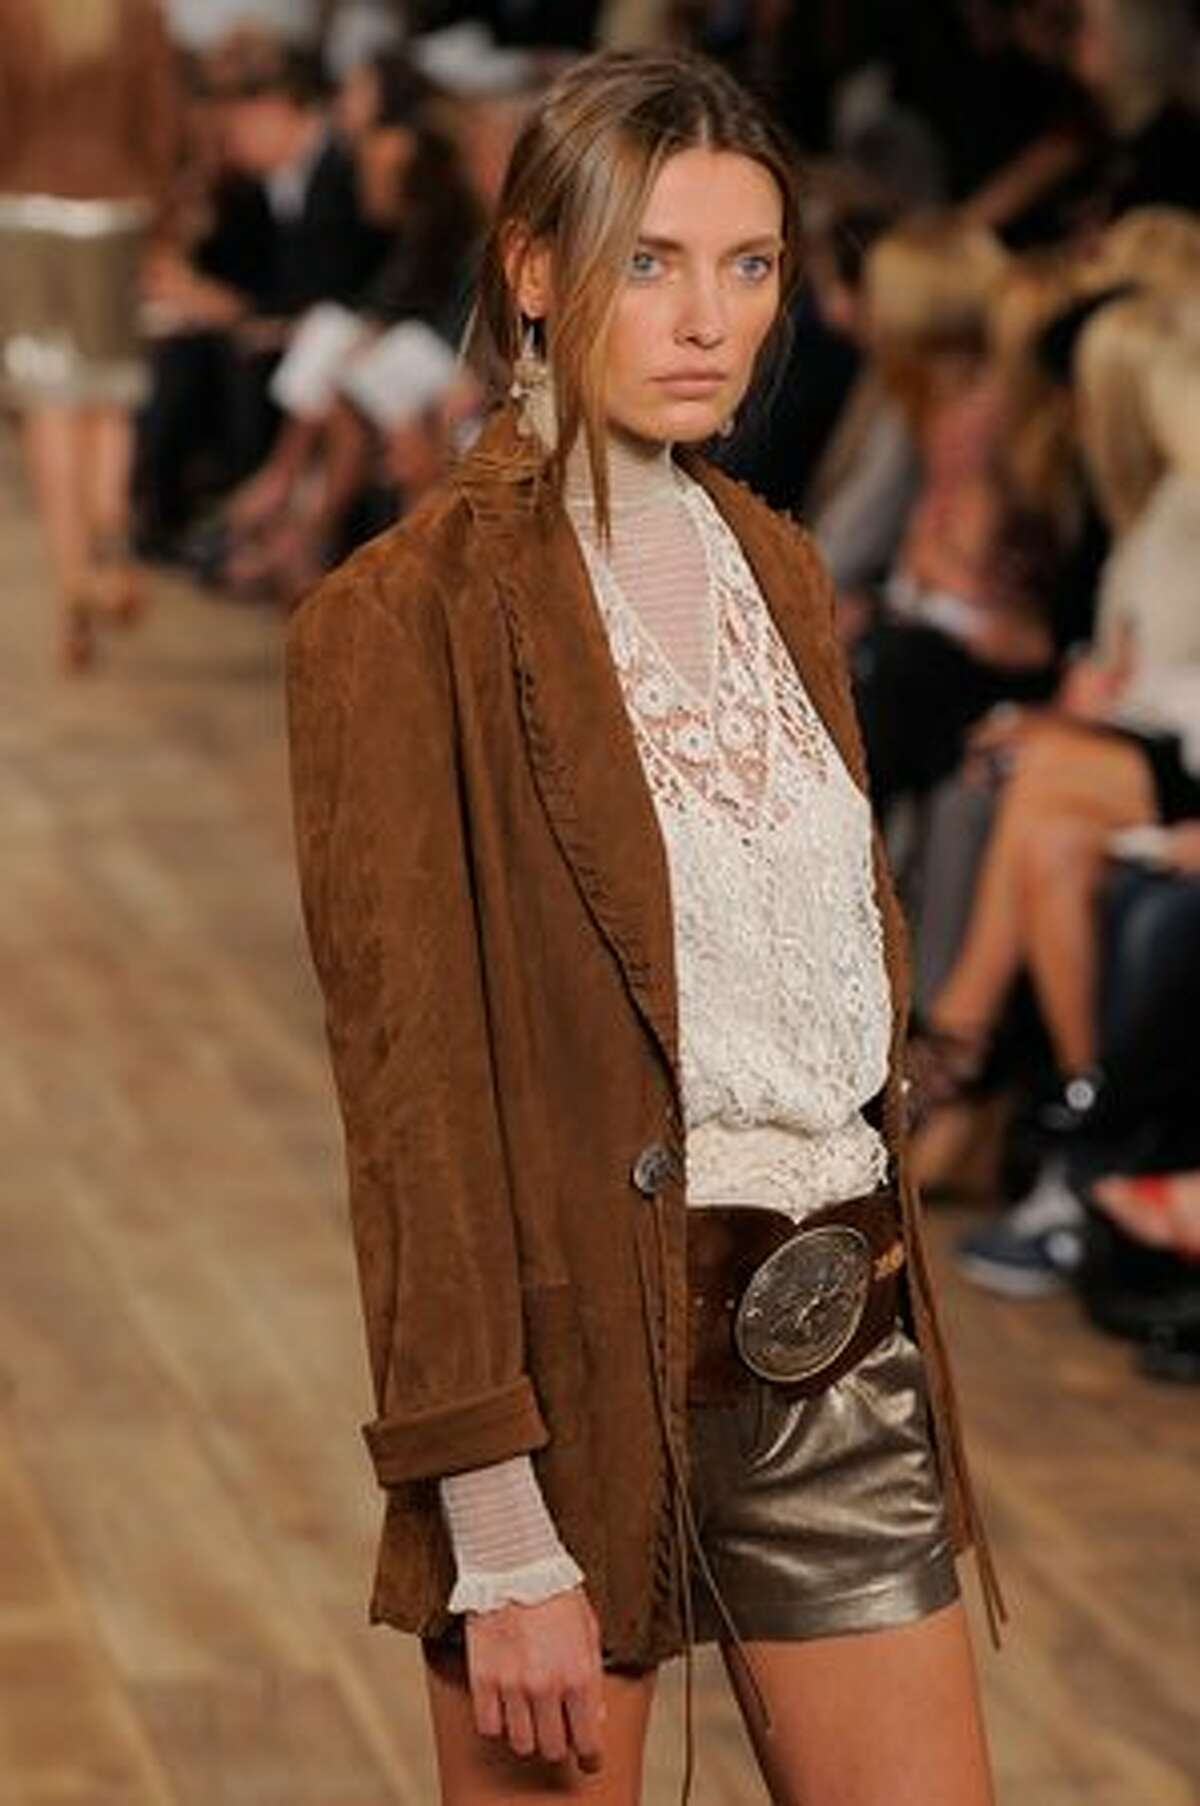 A model walks the runway at the Ralph Lauren Spring 2011 fashion show during Mercedes-Benz Fashion Week in New York City.